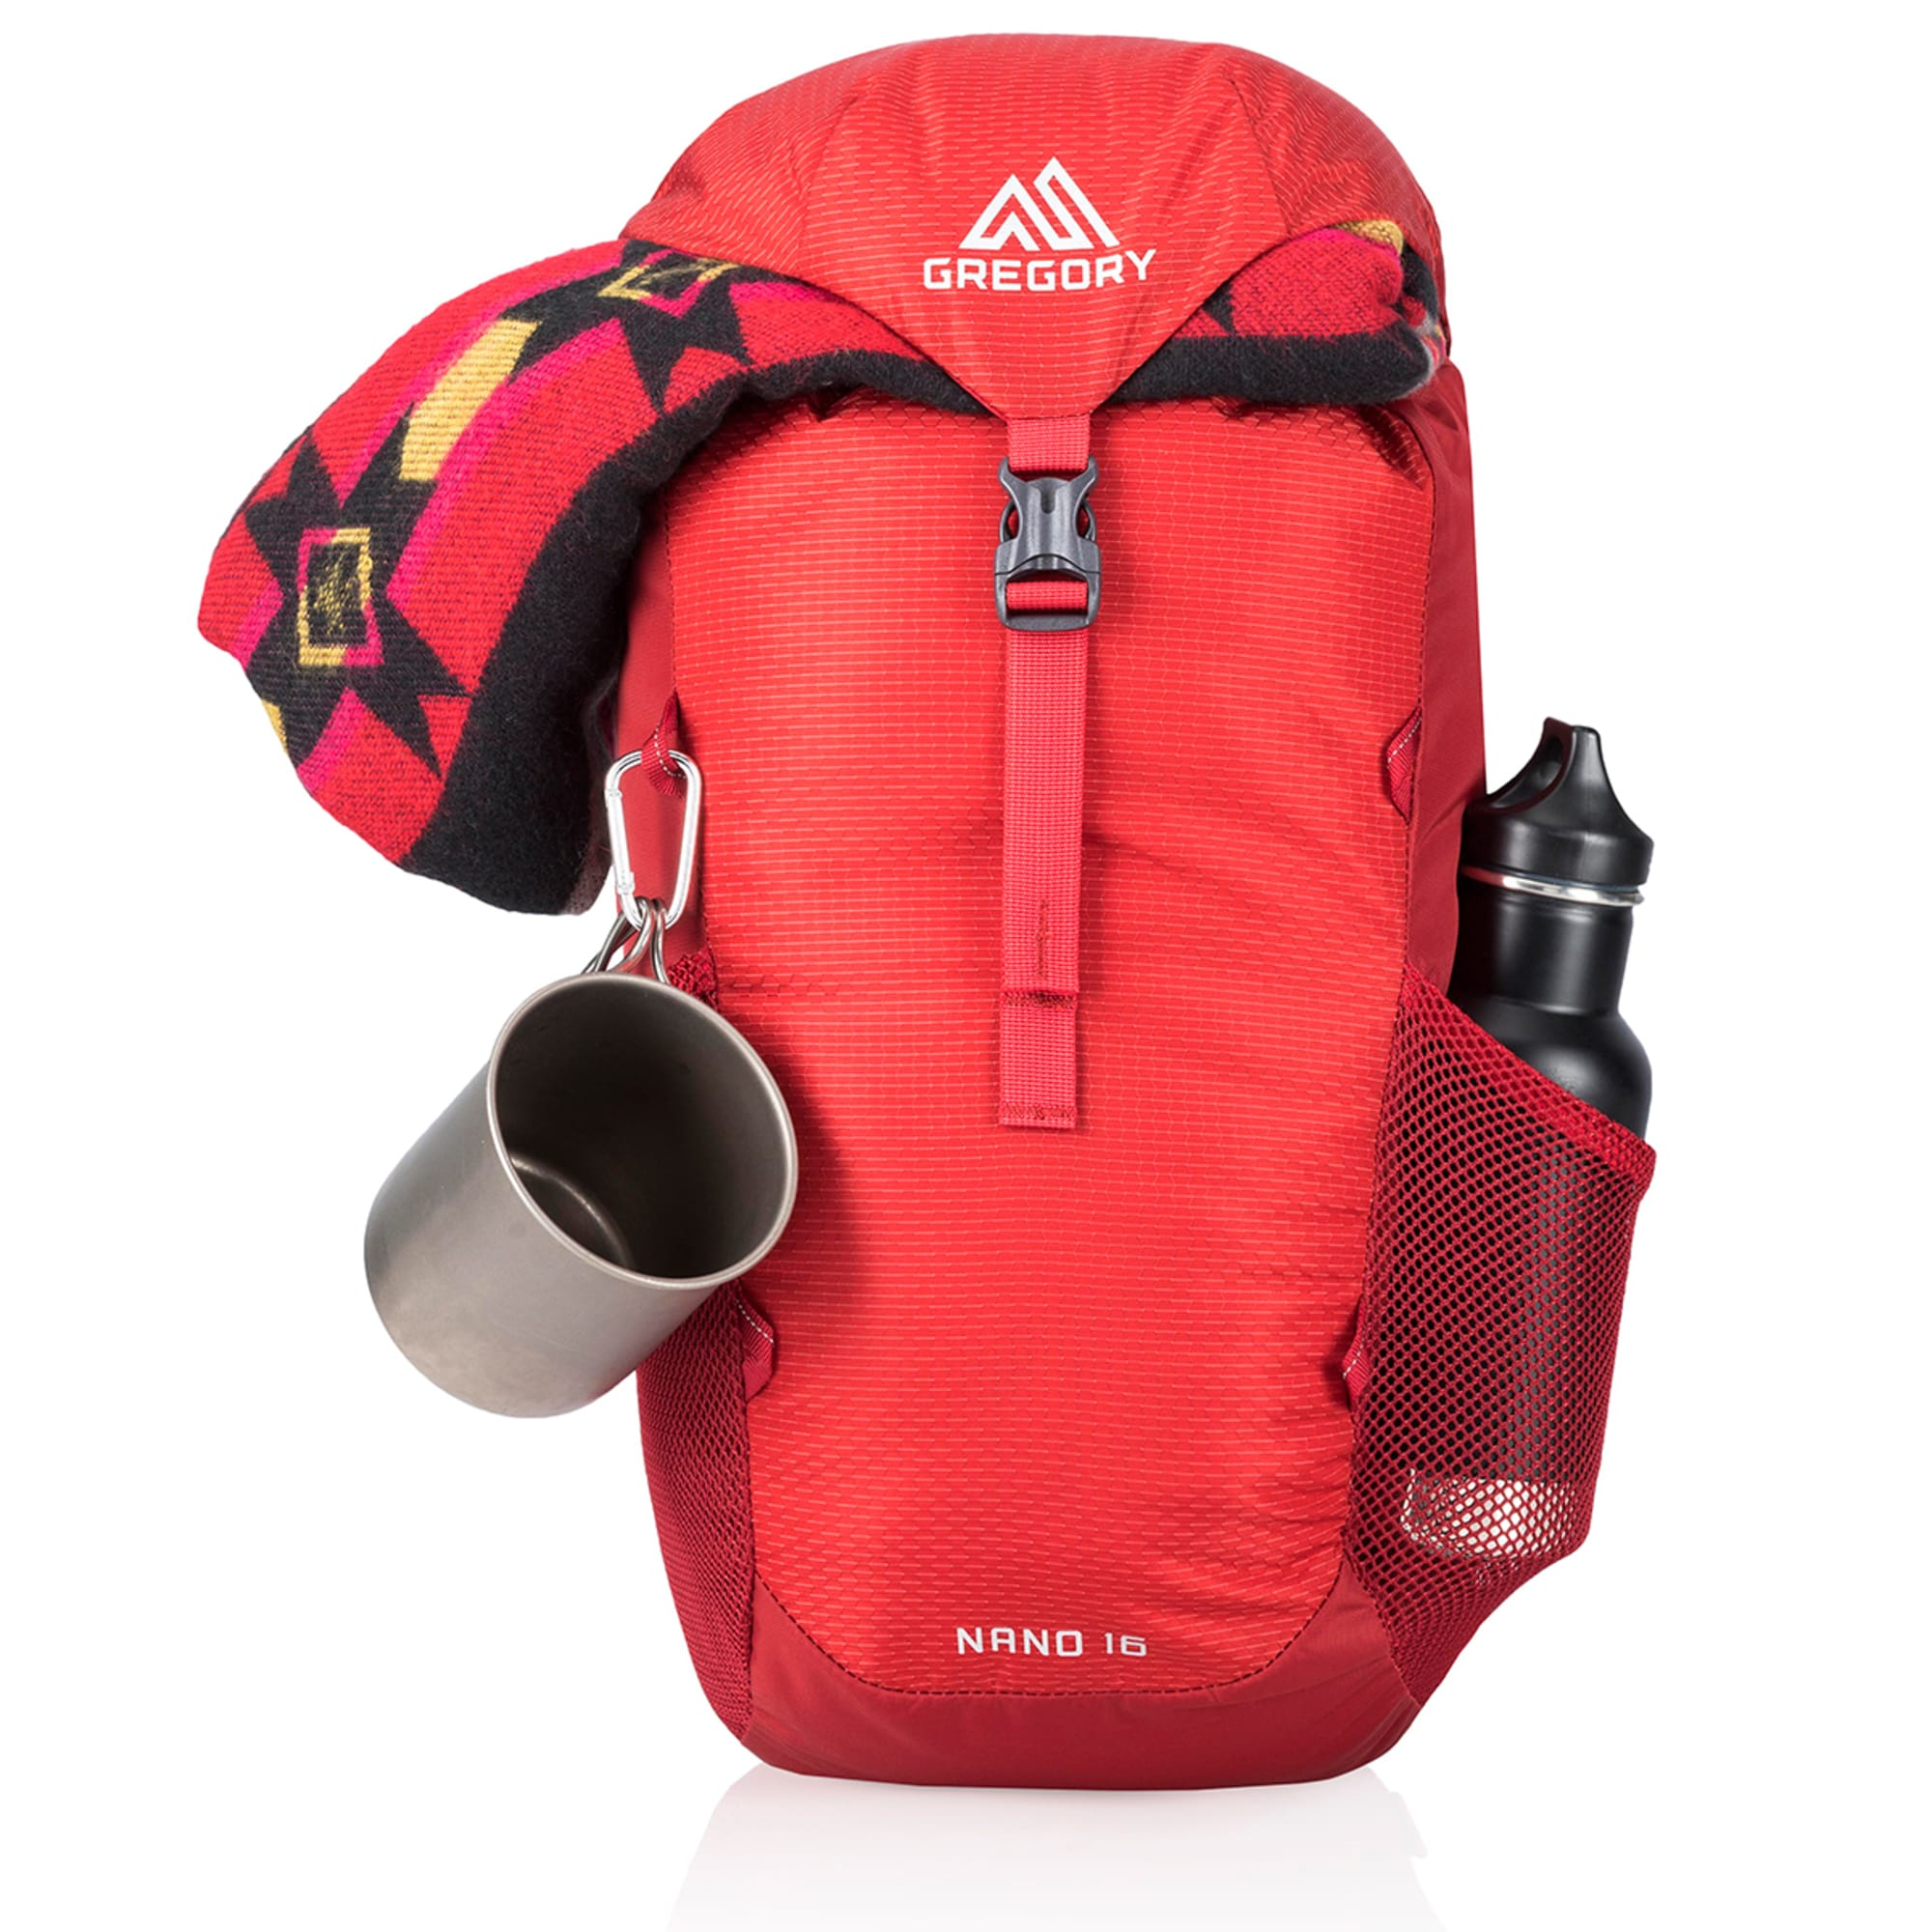 Gregory Packs Nano 16 Litre DayPack BackPack in Red Perfect Small Hike Bag